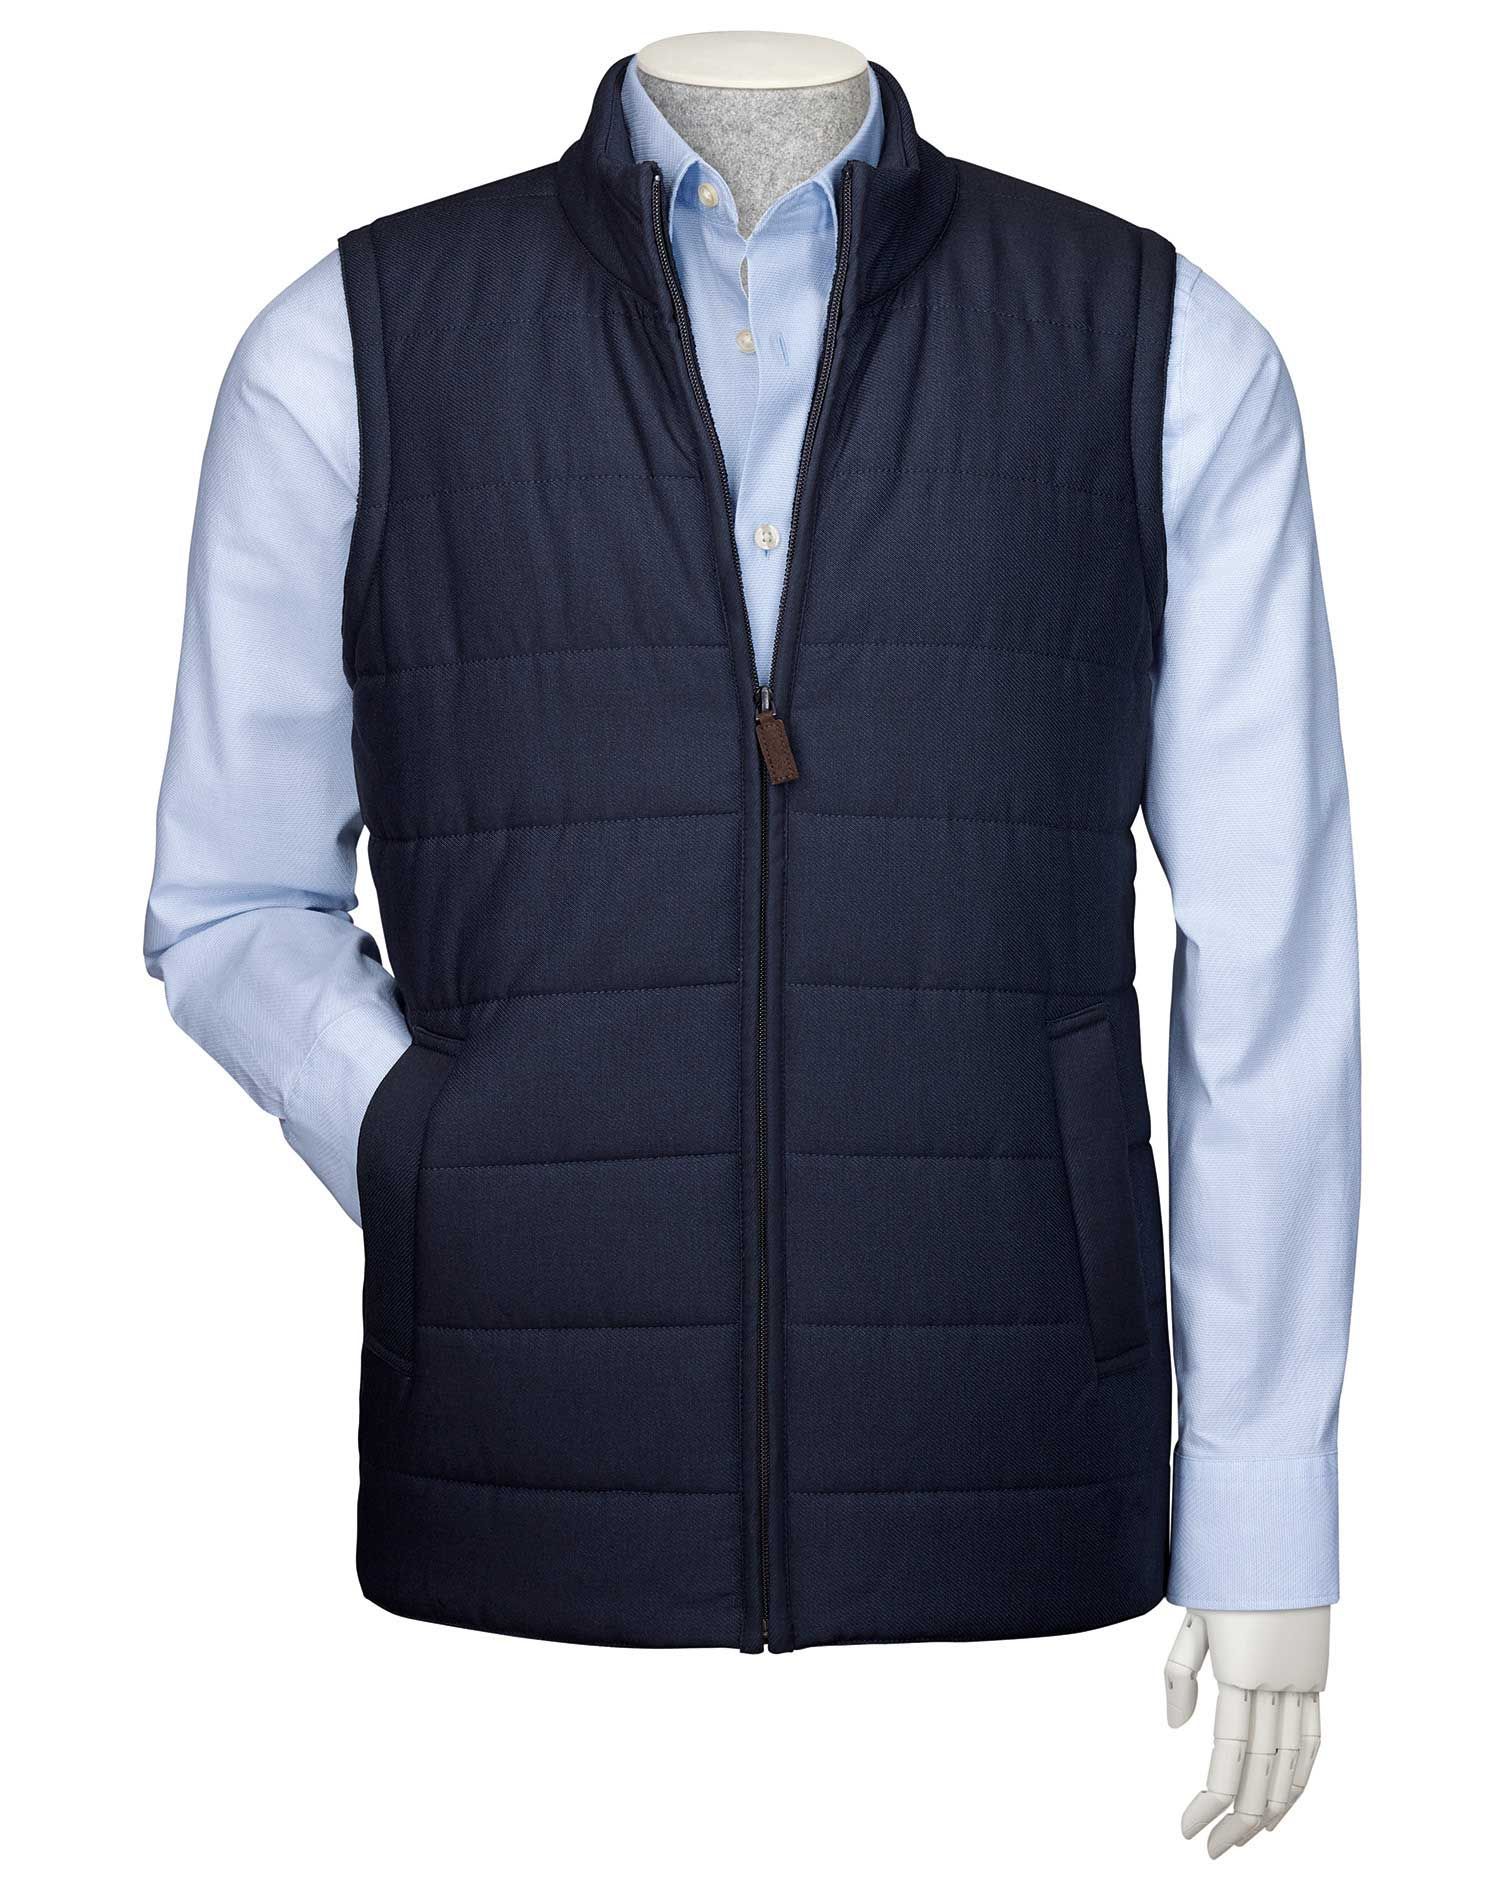 Navy Knit Back Gilet Wool Jacket Size Small by Charles Tyrwhitt